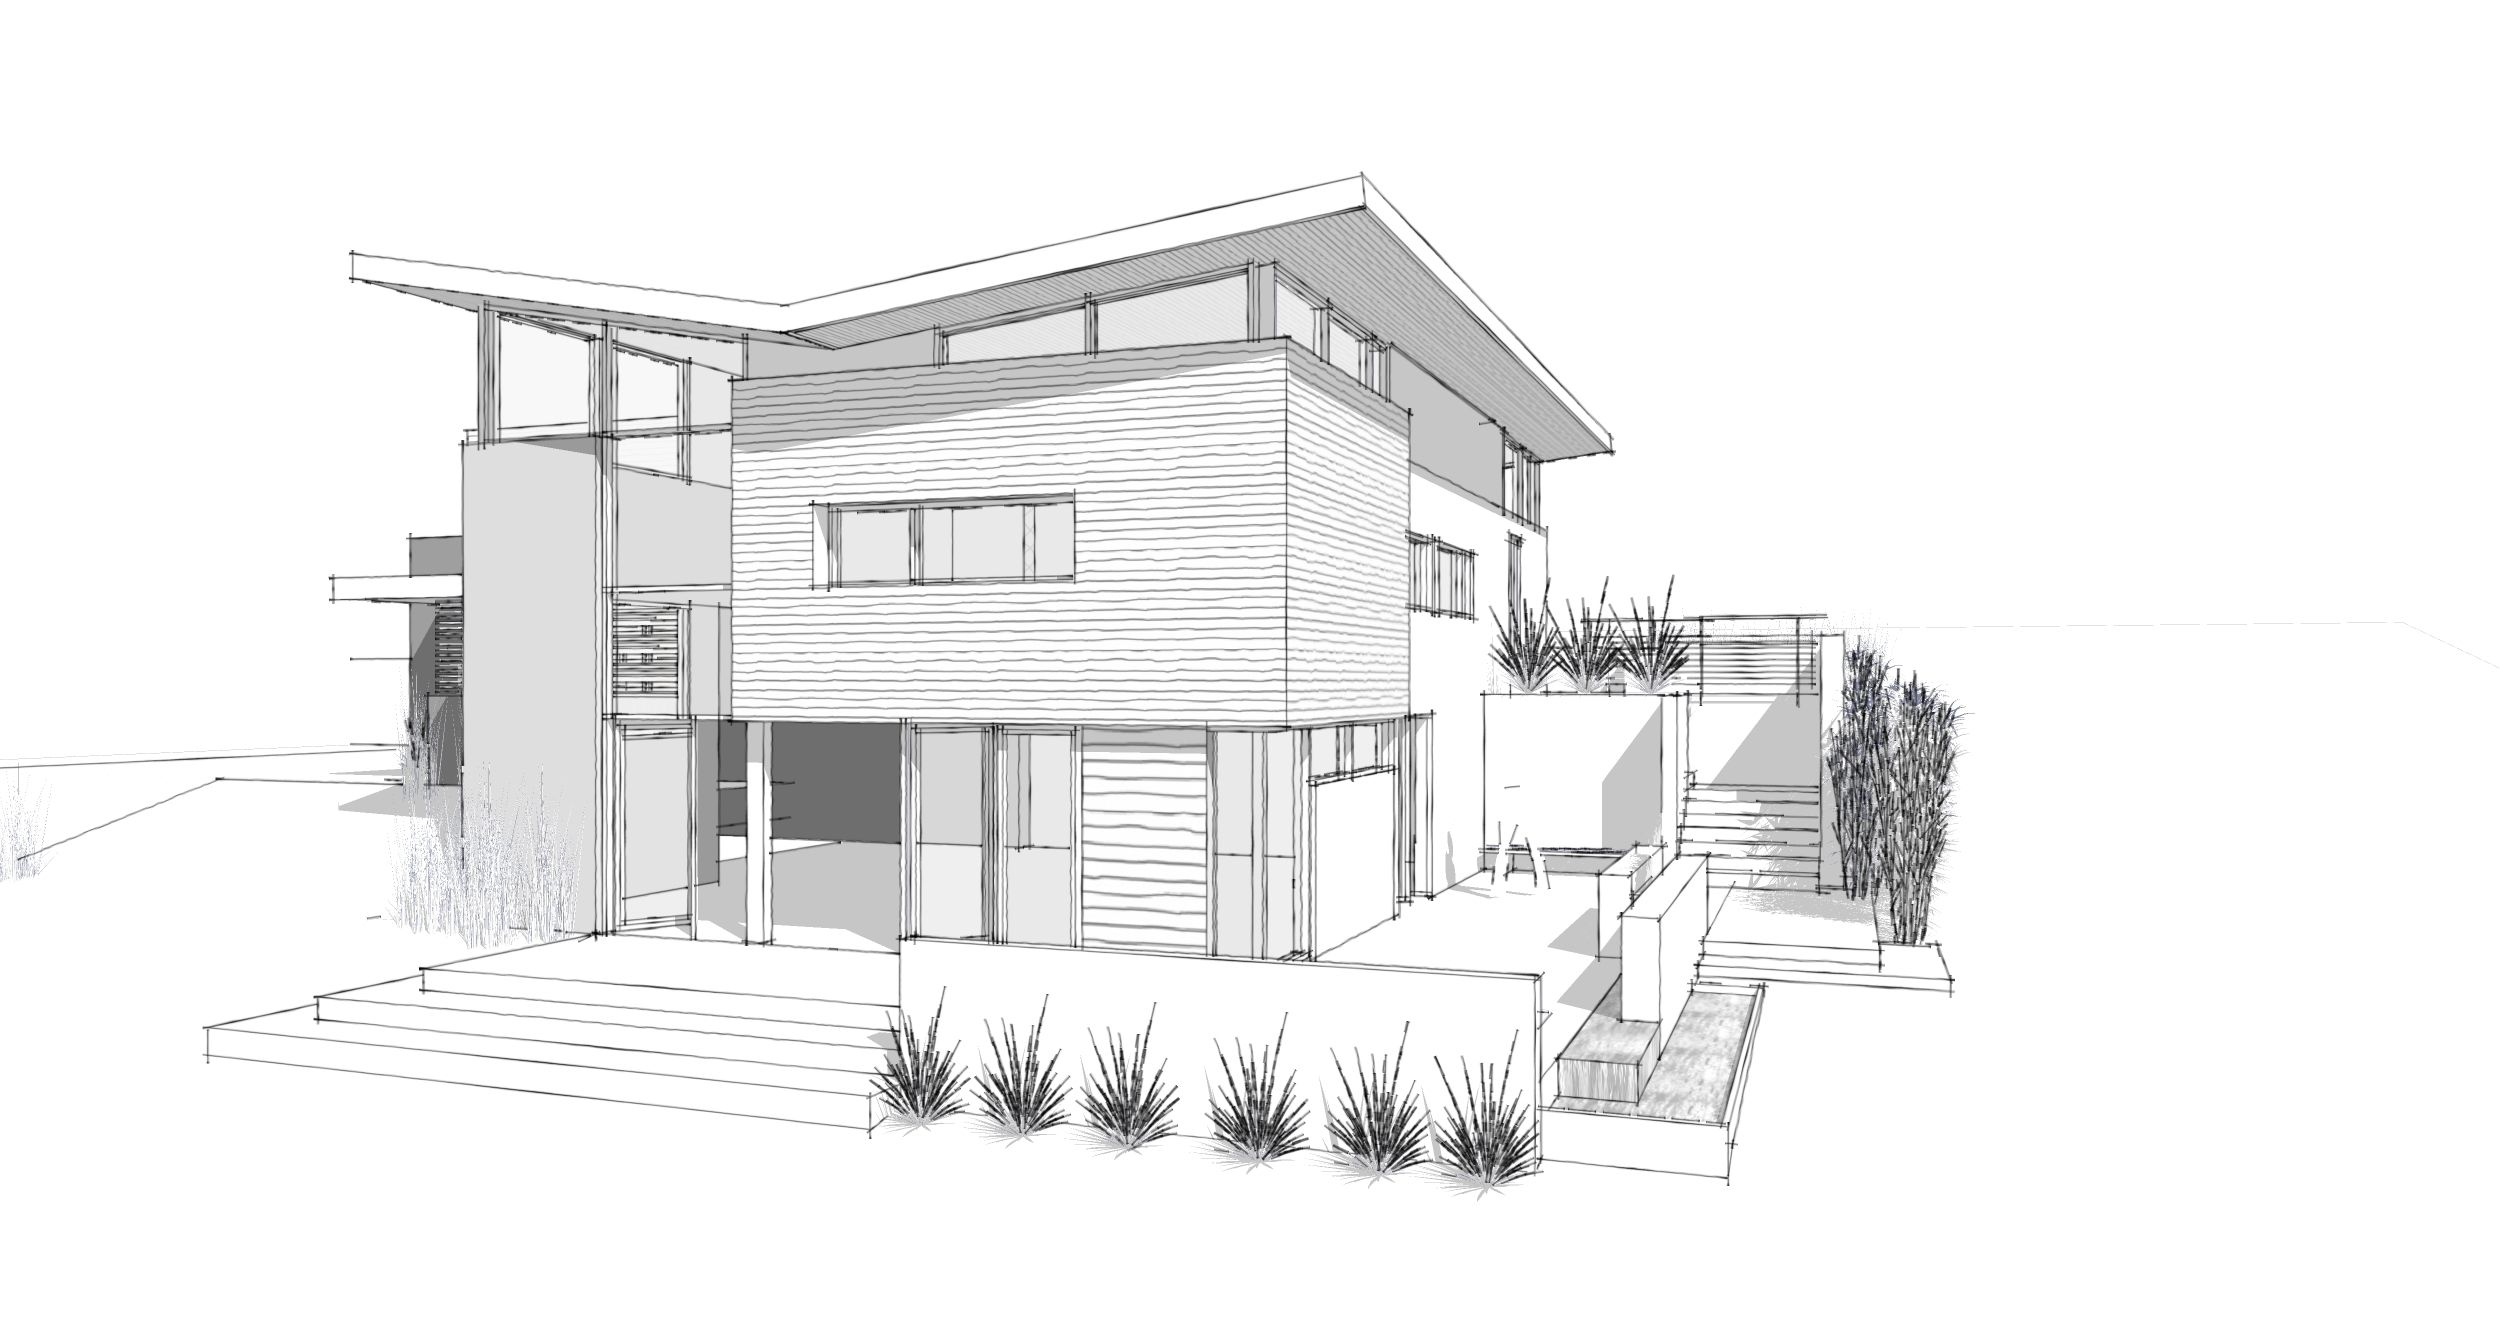 Modern home architecture sketches design ideas 13435 for Architectural home plans